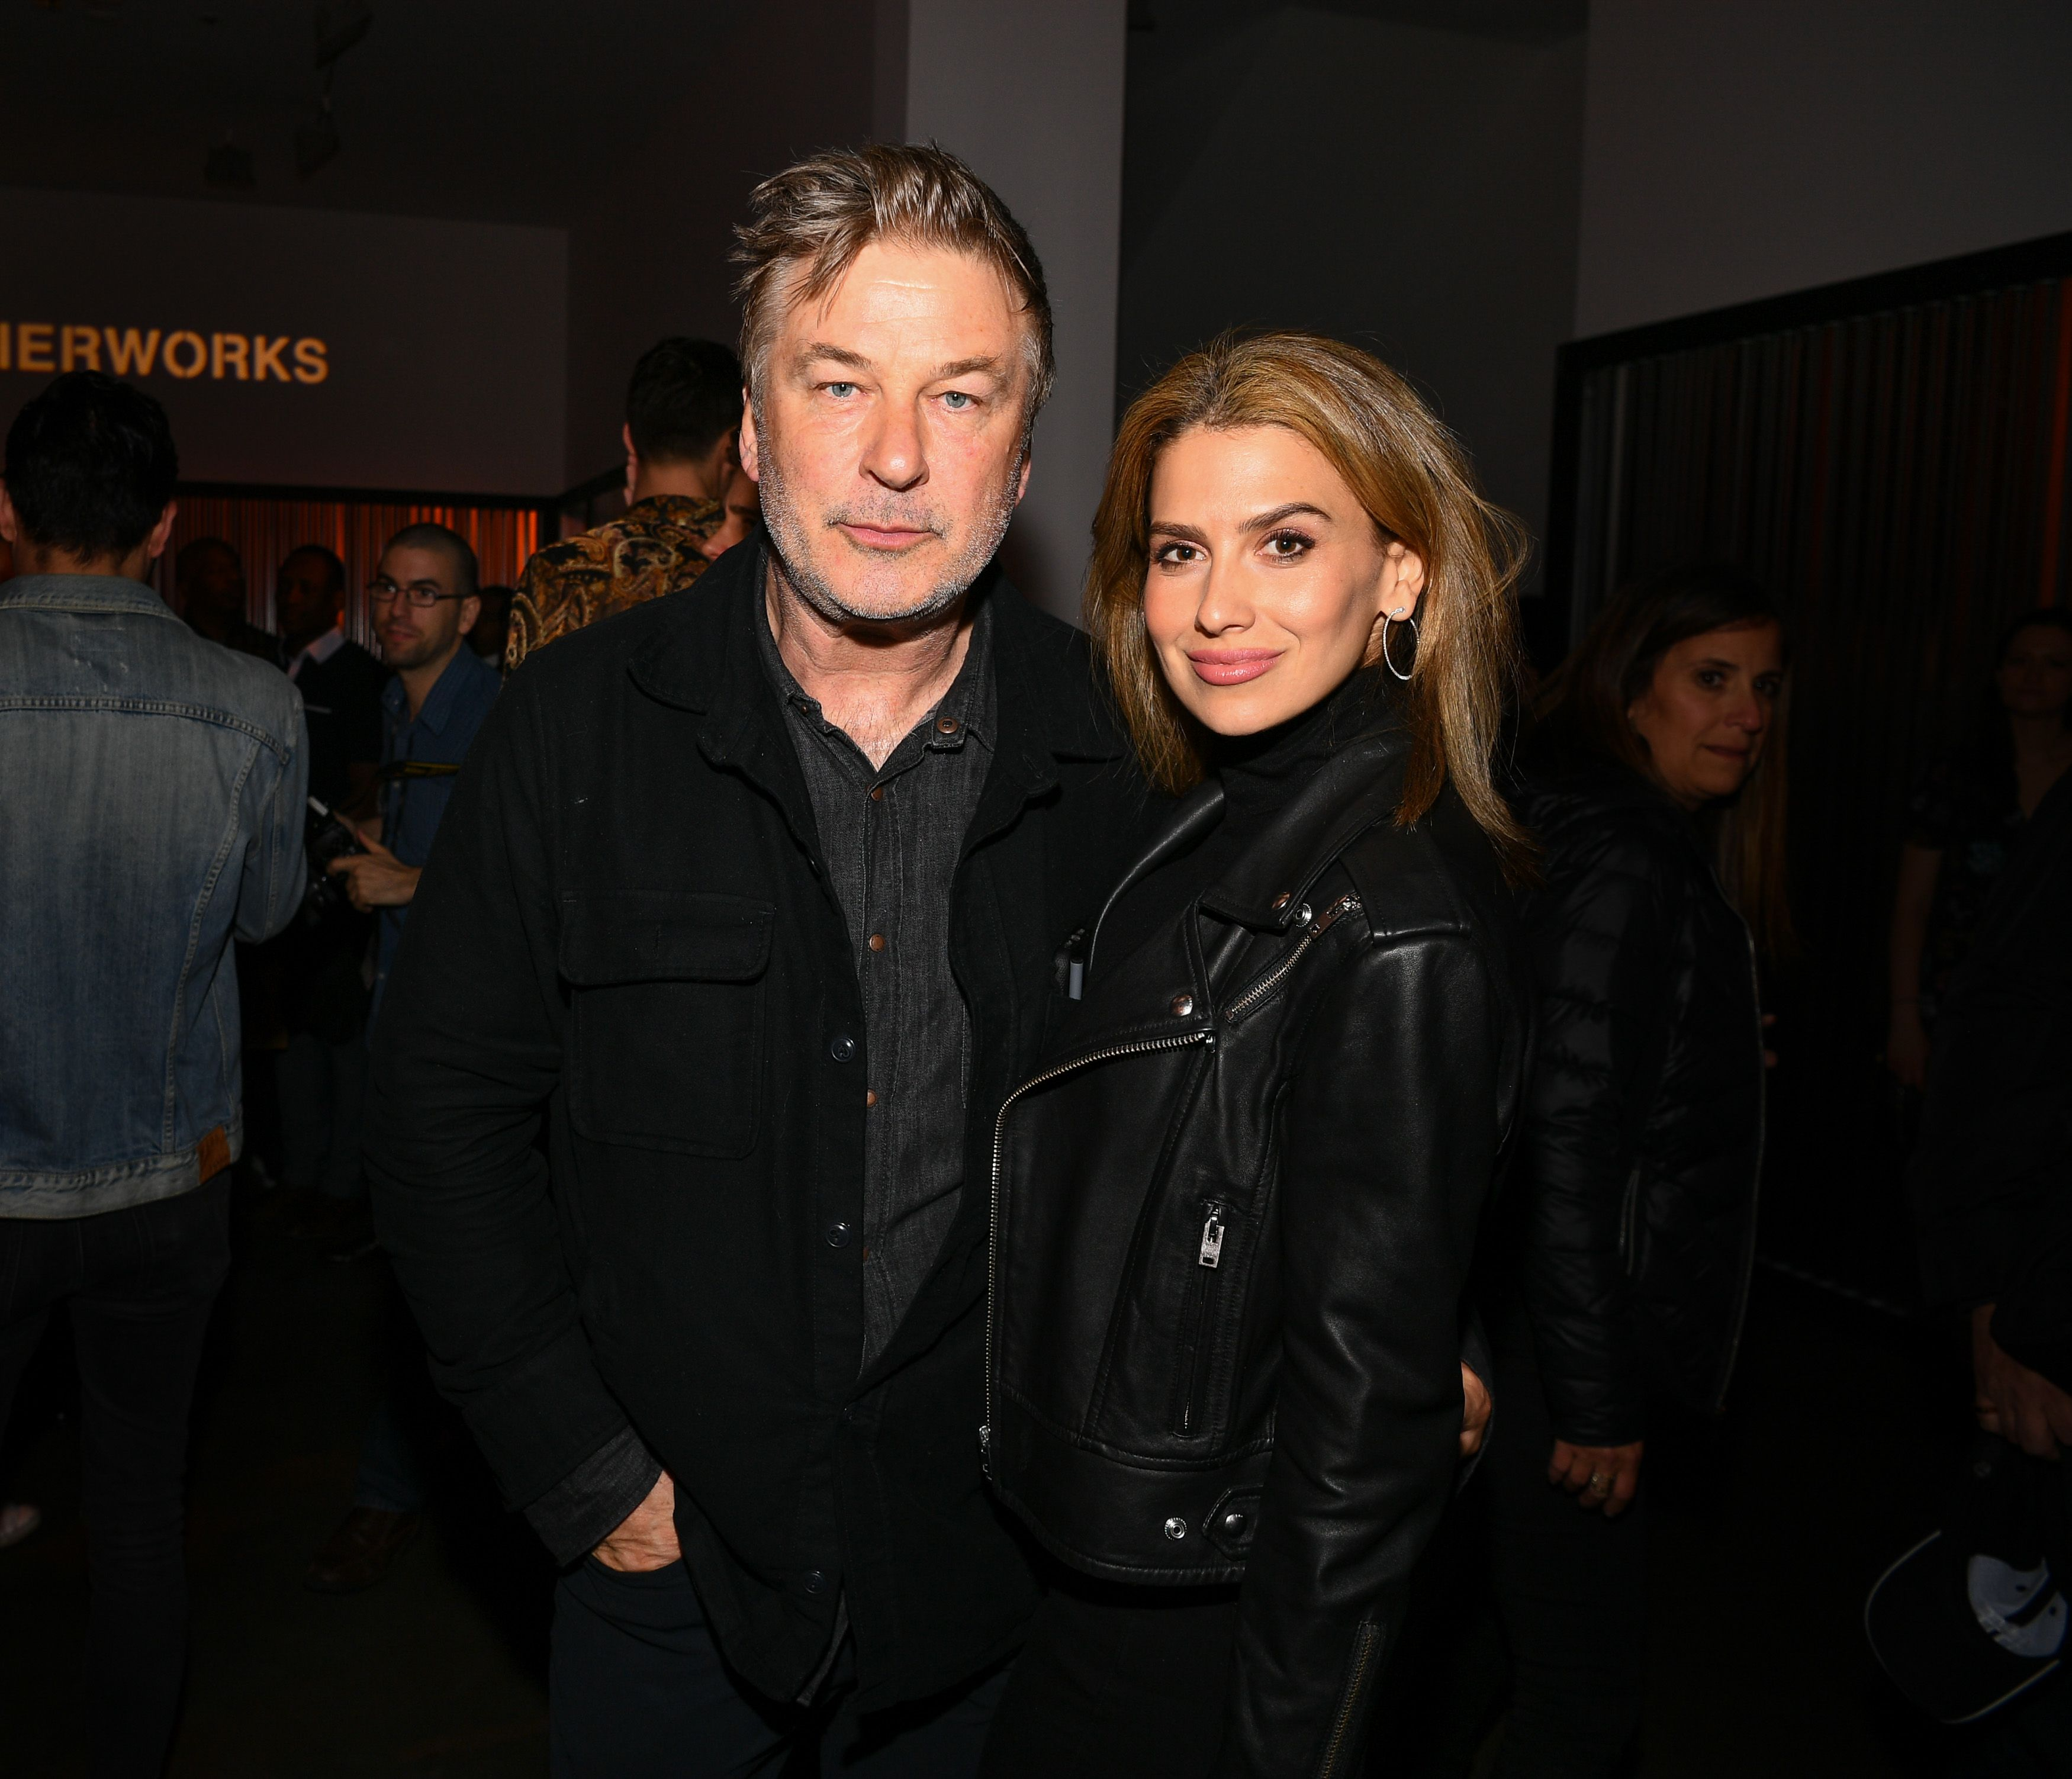 Alec and Hilaria Baldwin at the Tribeca Film Festival After-Party on April 26, 2019, in New York City | Photo: Dave Kotinsky/Getty Images